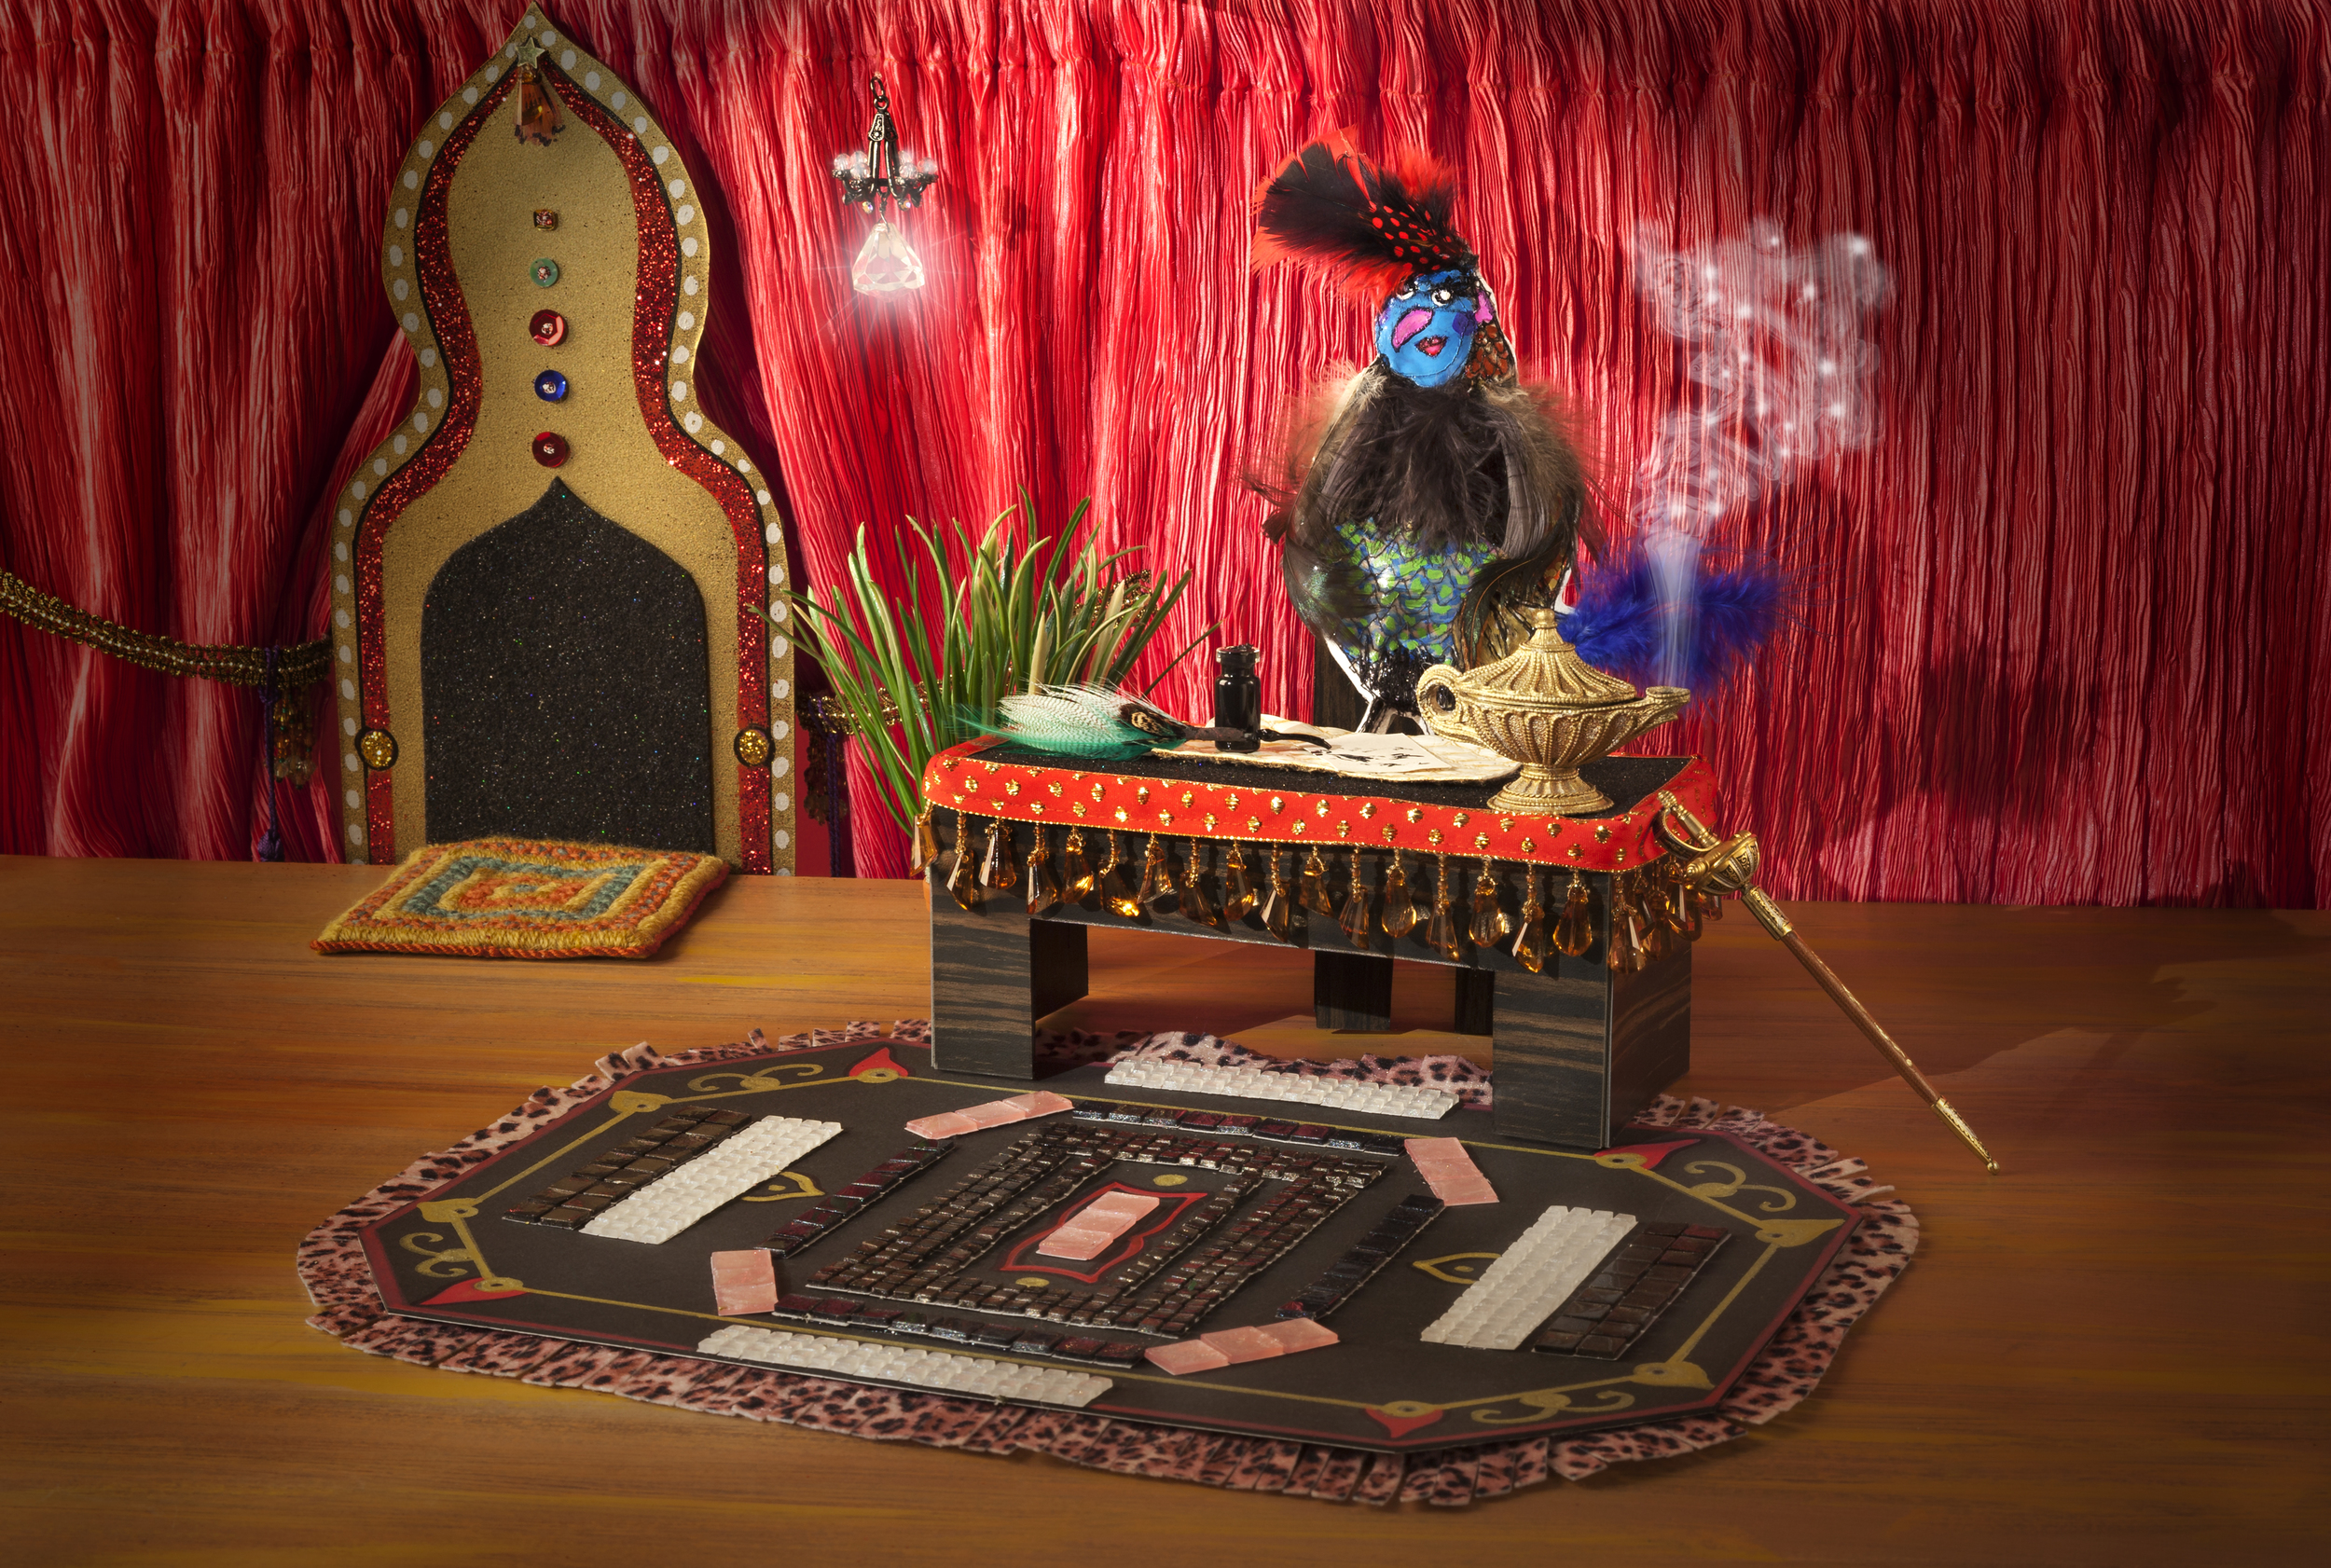 Quiera Quail knows there are mysteries to publishing....... I need a genie right about now!